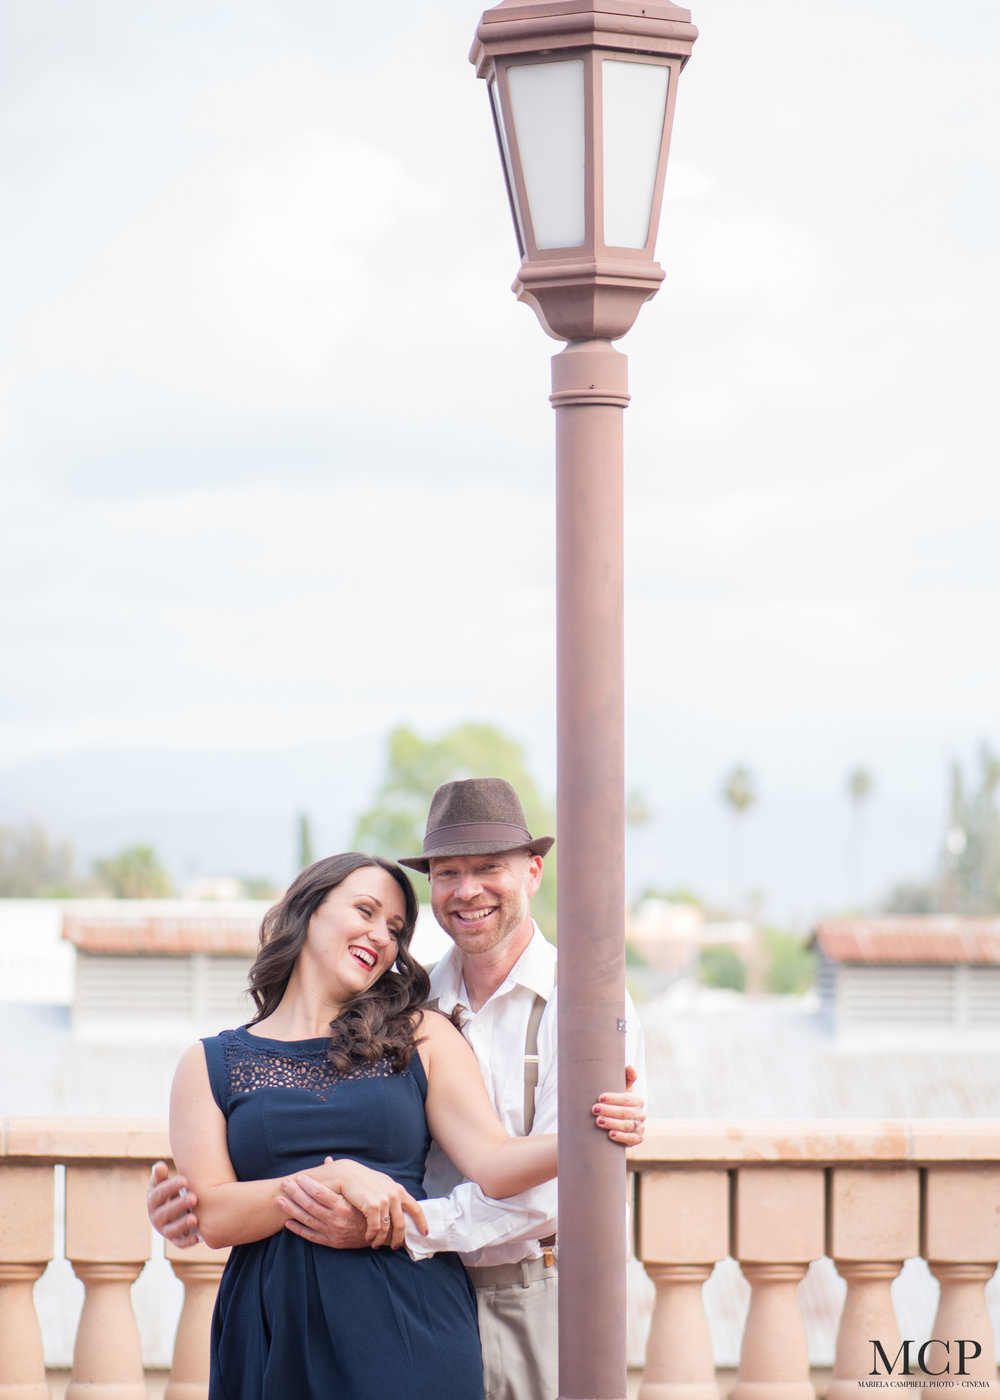 Amanda & Travis - Santa Ana Train Station - MCP-167.jpg